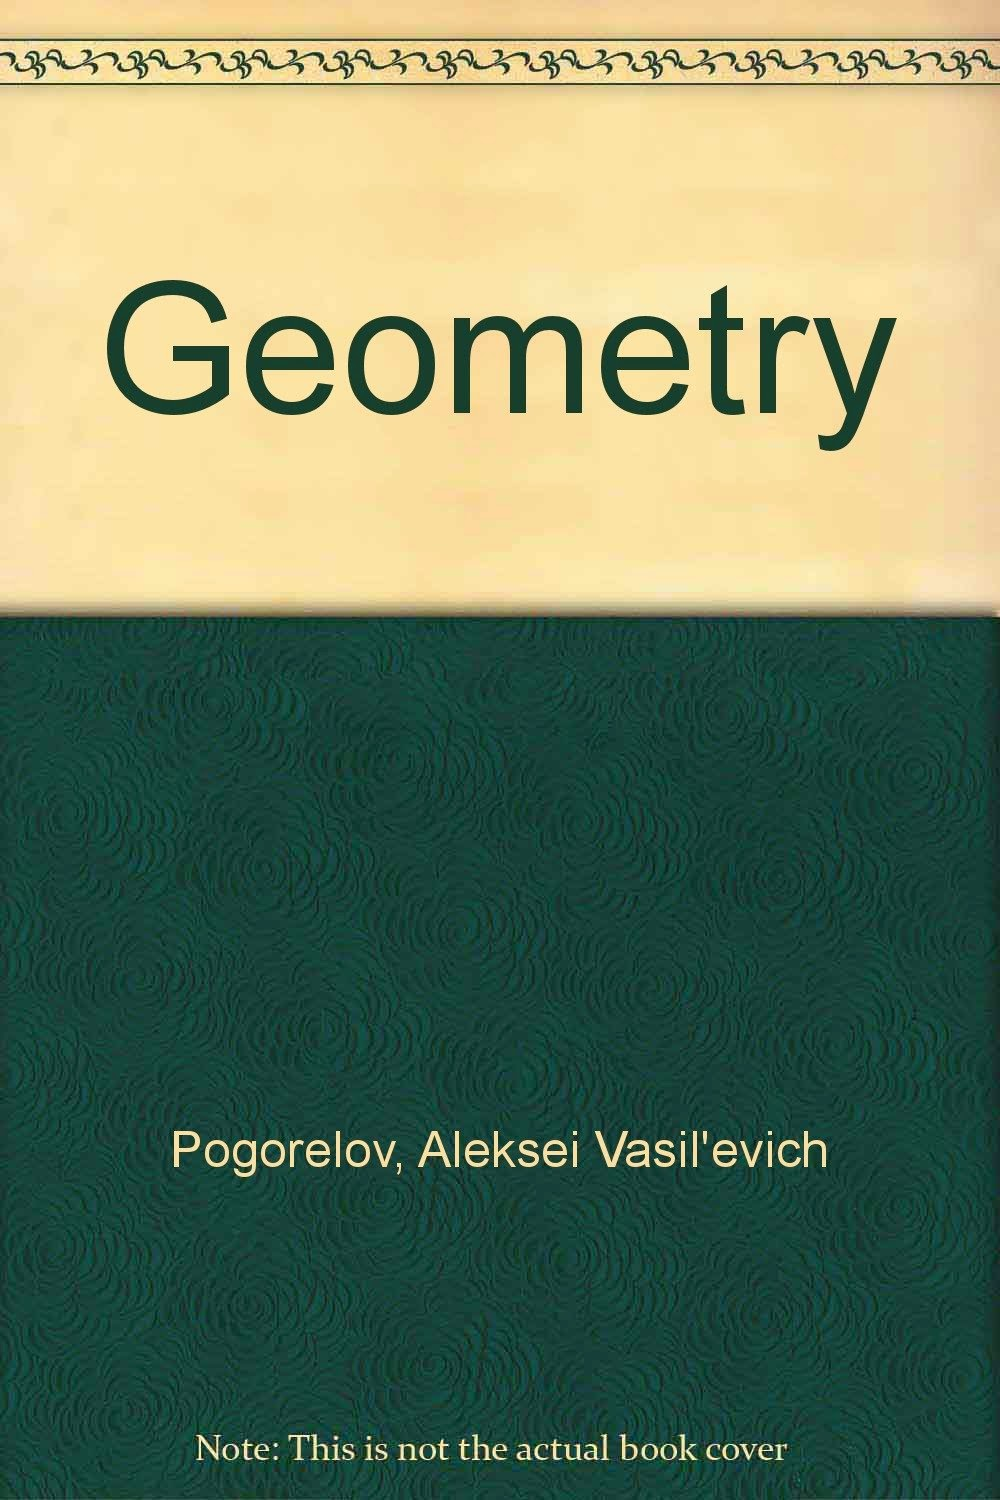 http://www.amazon.com/Geometry-V-Pogorelov/dp/0714725536/